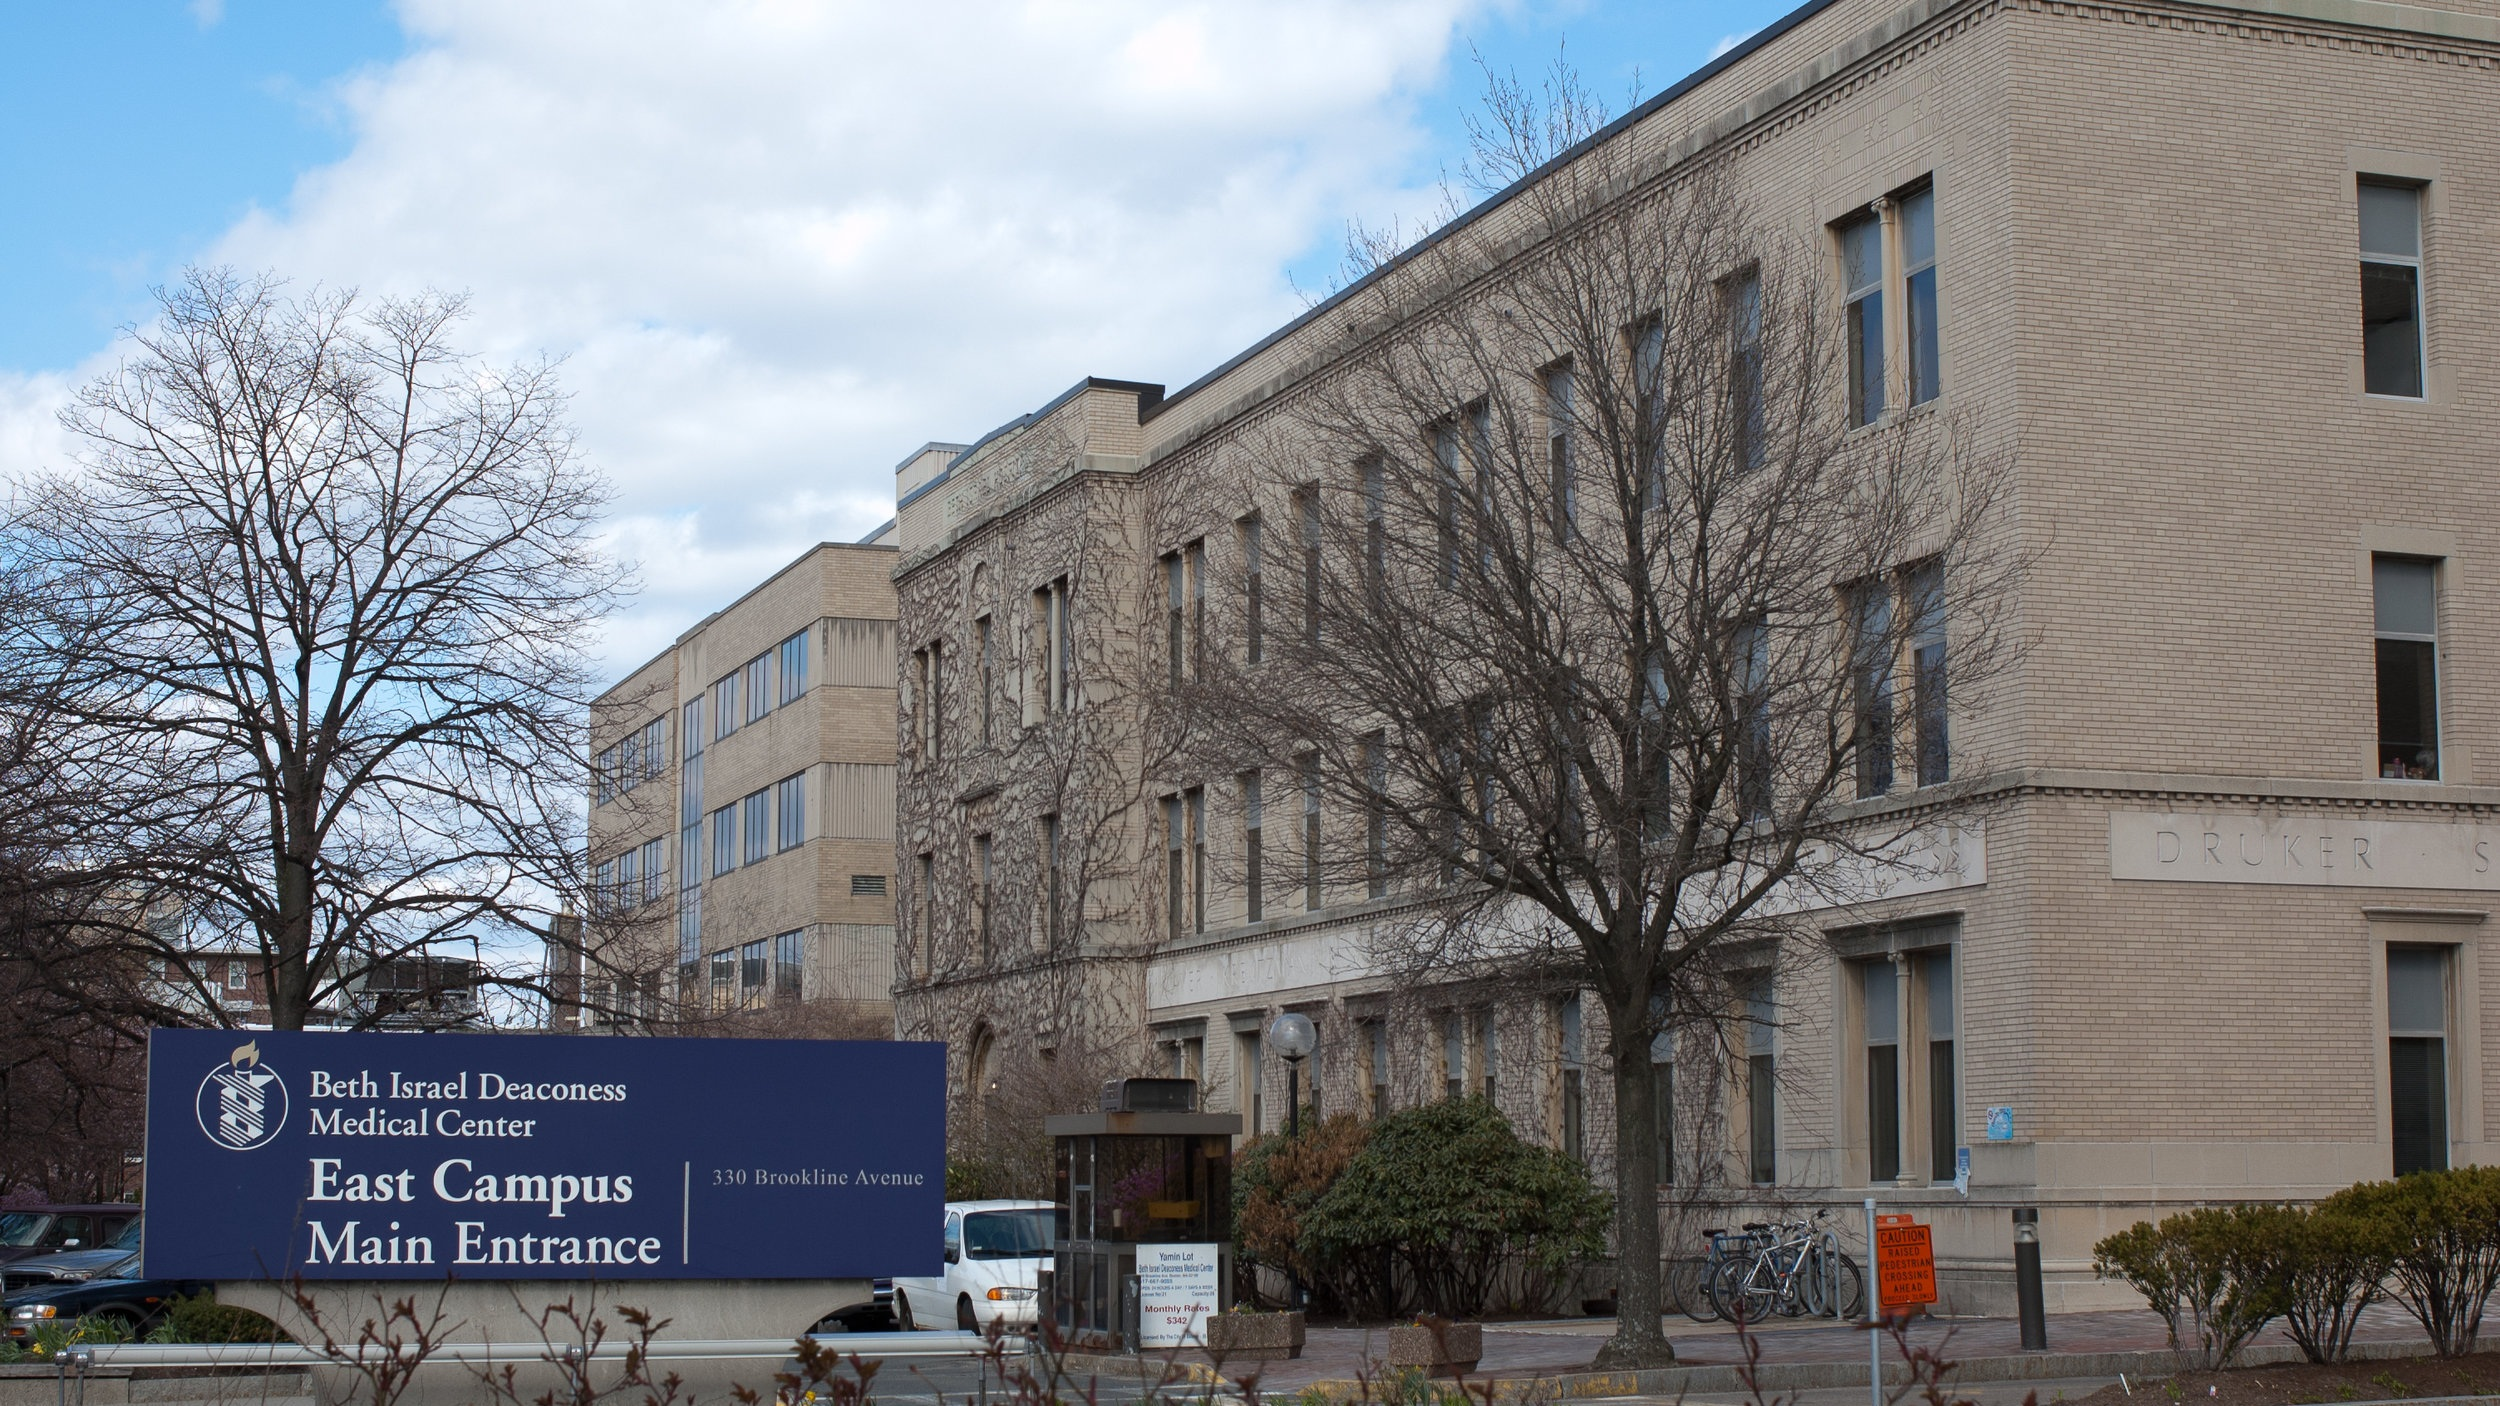 Beth Israel Deaconess Medical Center - Located in the Longwood Medical Area, Learn more about Beth Israel by clicking here